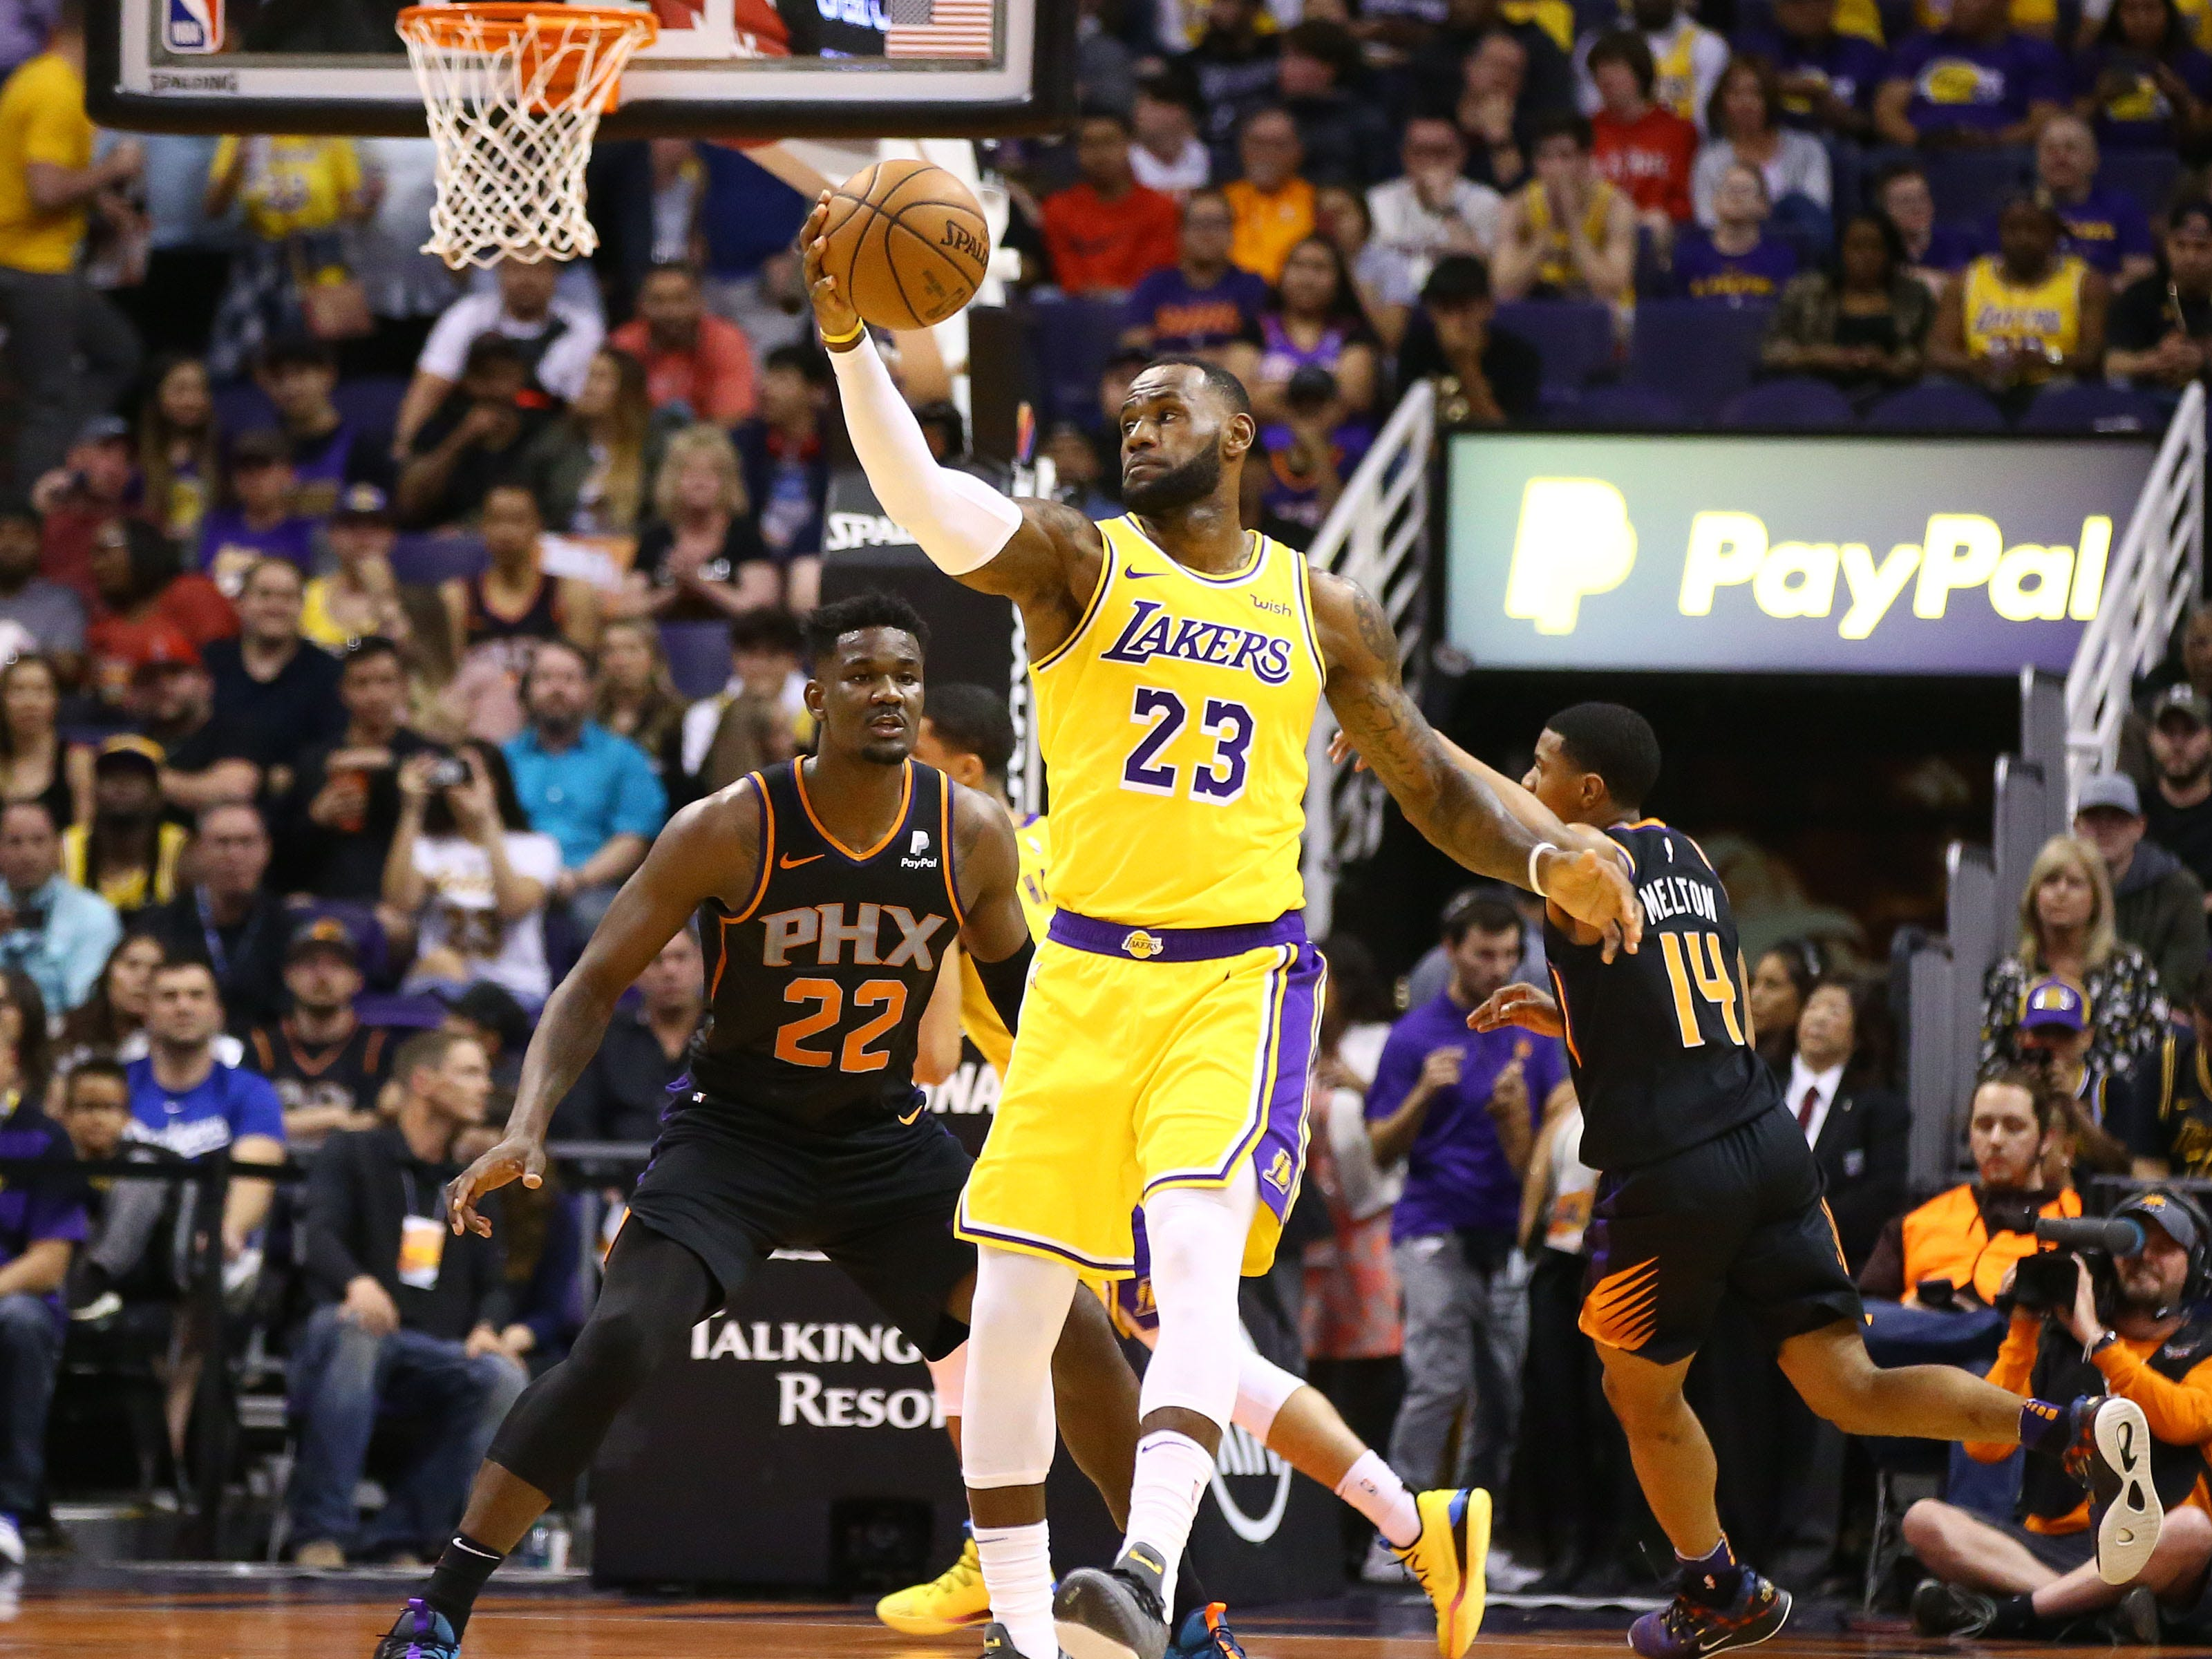 Phoenix Suns Deandre Ayton guards Los Angeles Lakers LeBron James in the first half on Mar. 2, 2019, at Talking Stick Resort Arena in Phoenix, Ariz.